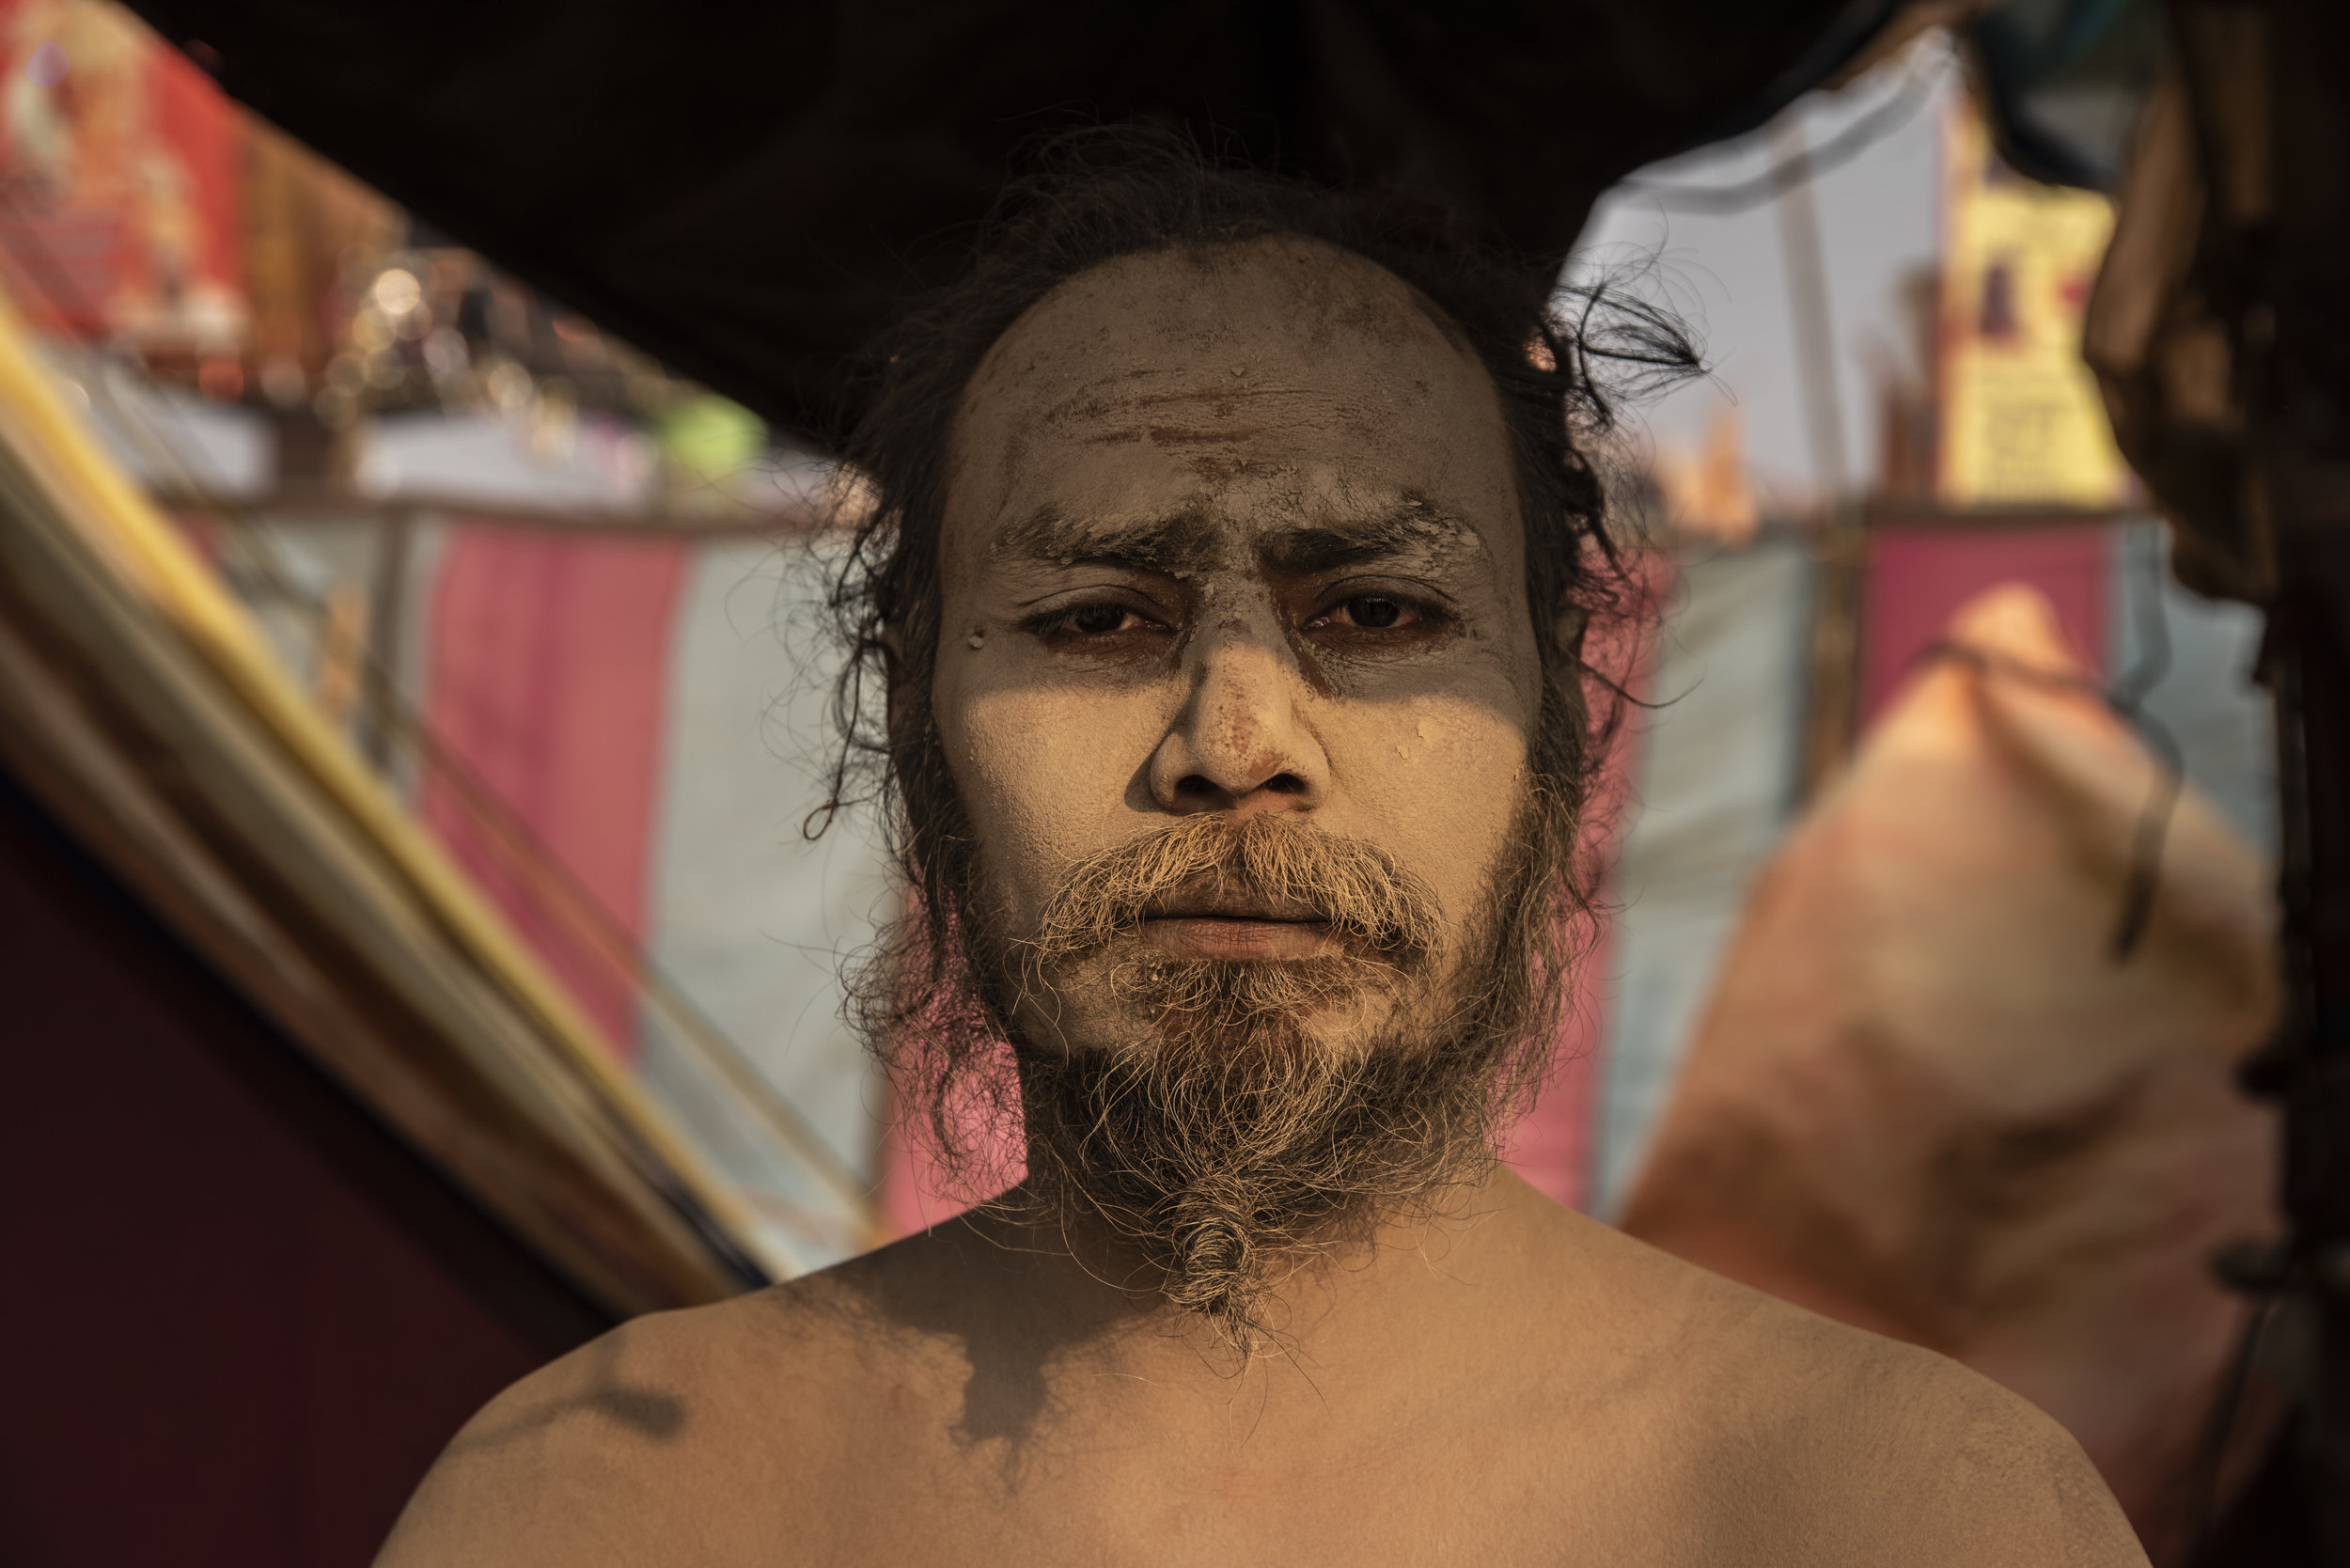 A Naga Sadhu meditates in his tent, offering blessings to those who pass.